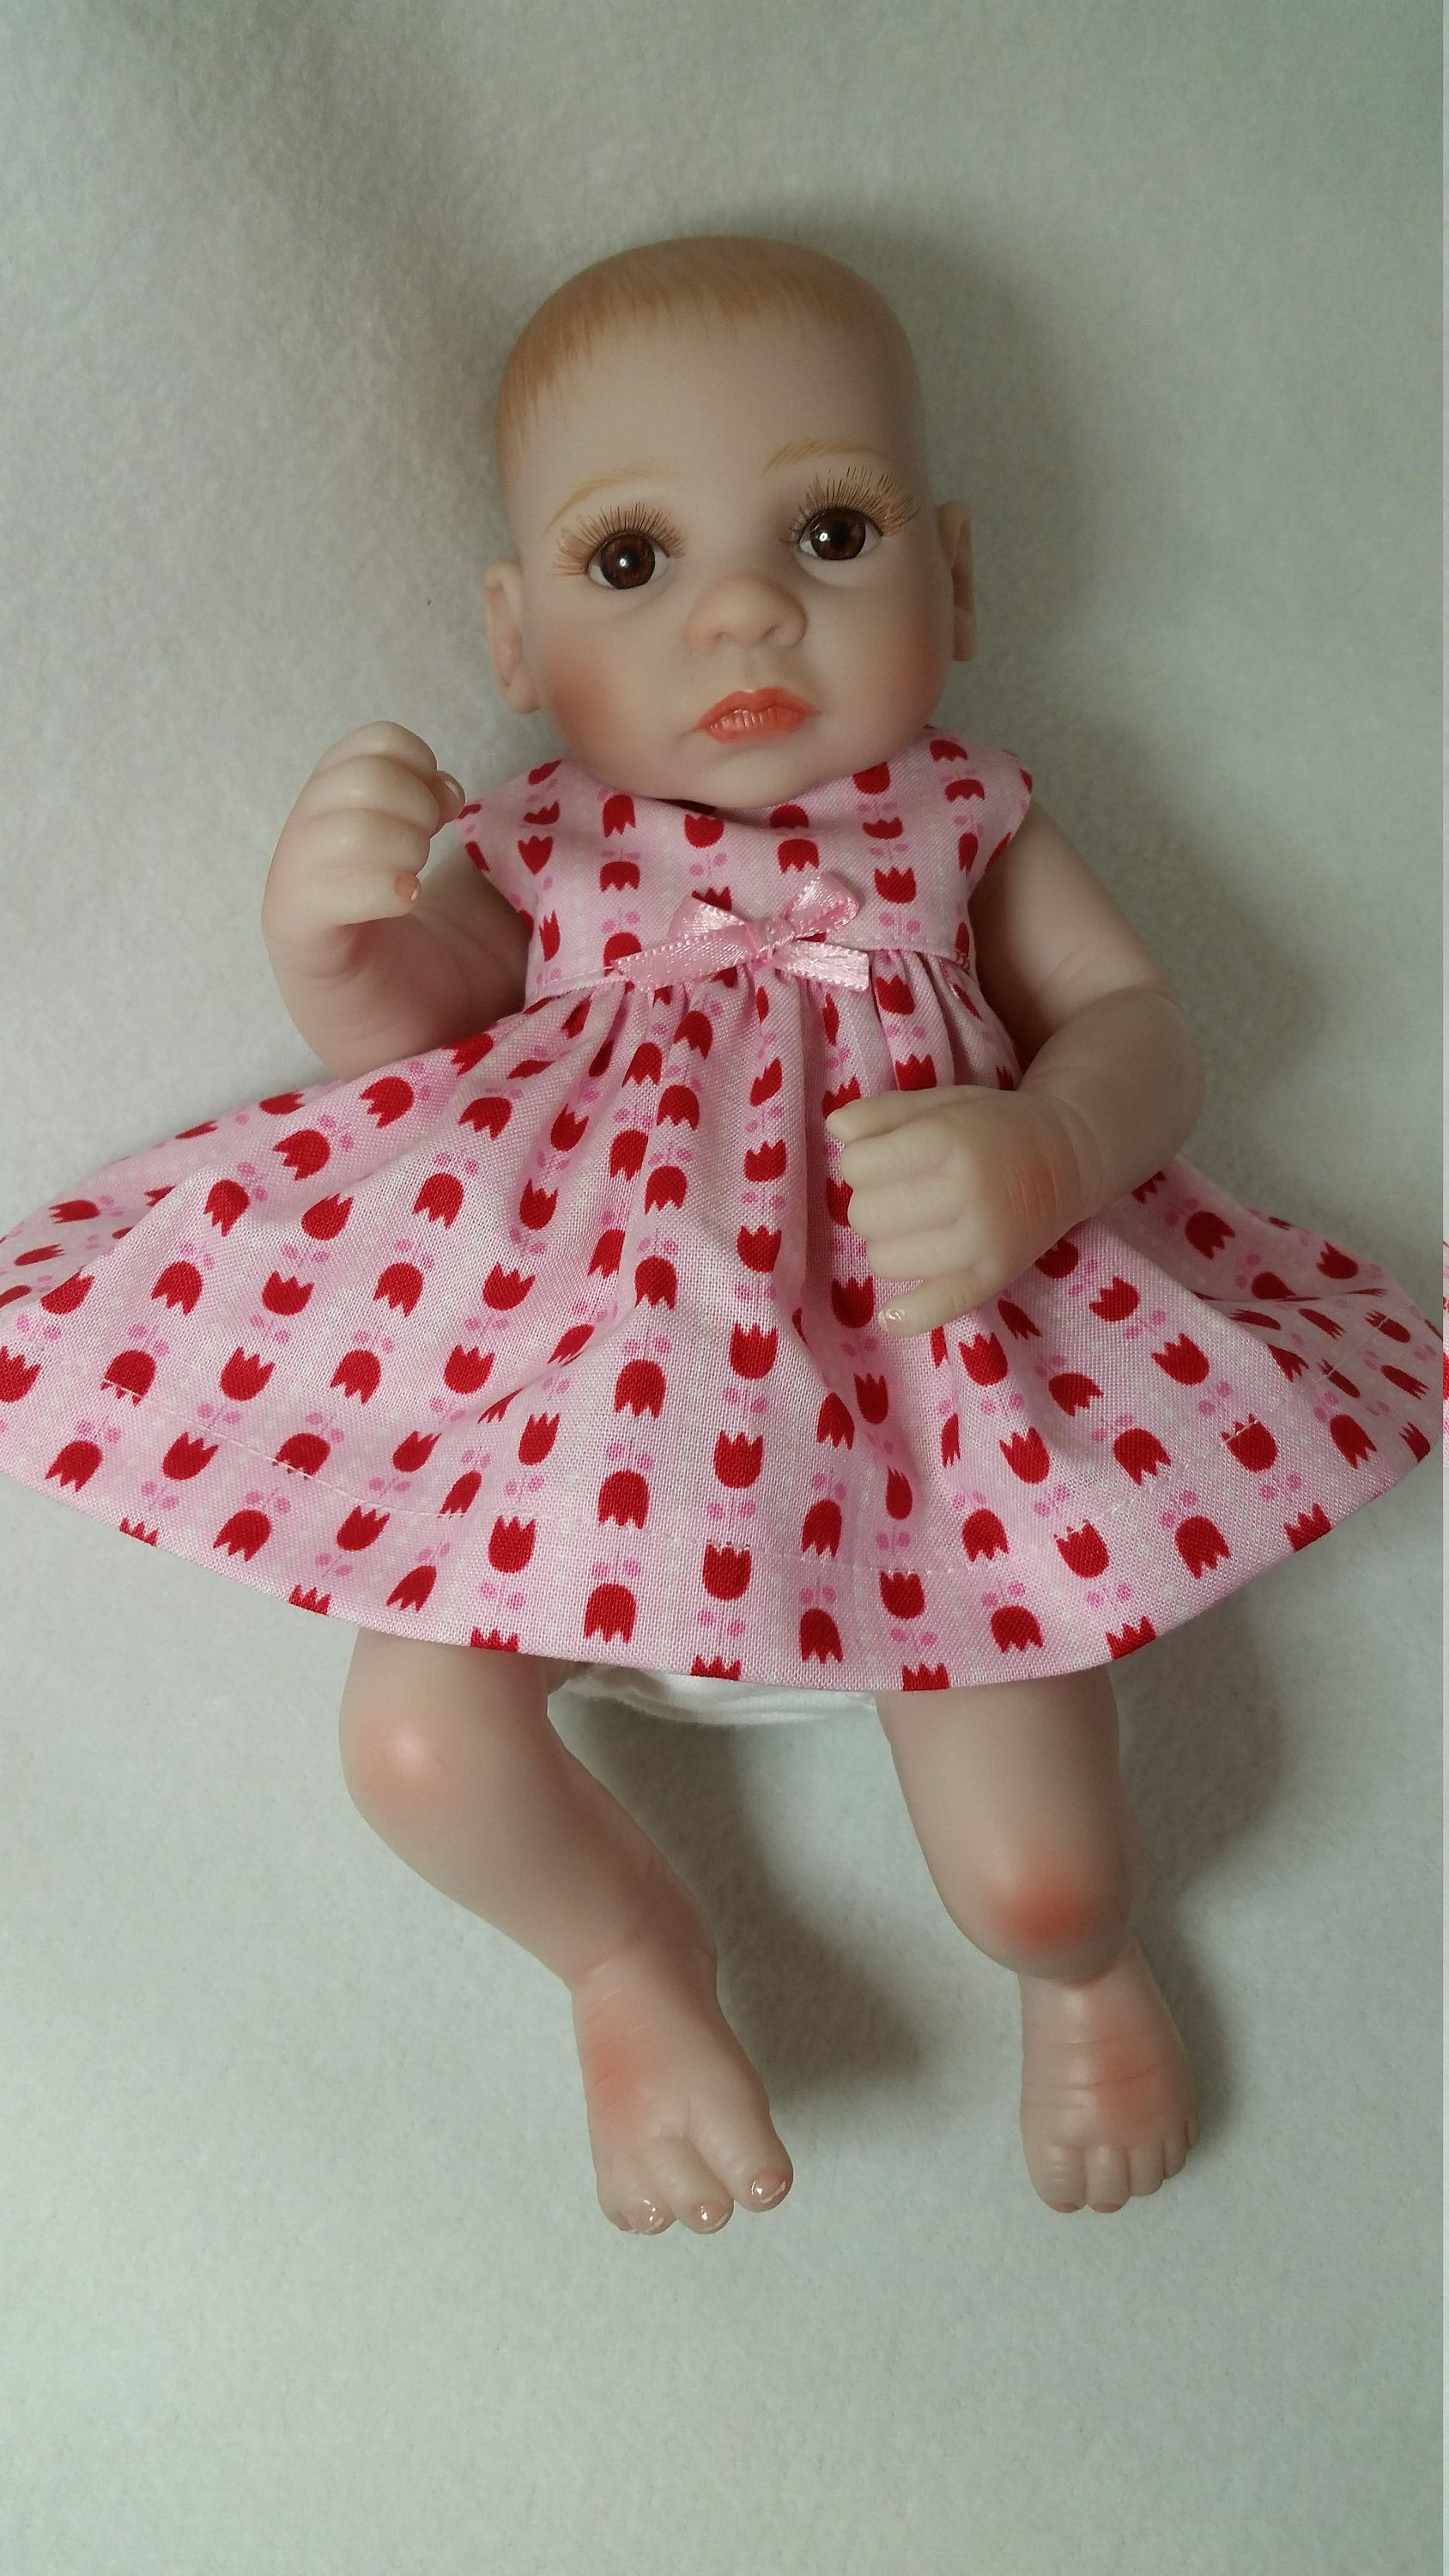 11 13 Dress Pink With Red Tulips Fits Baby Alive Silicone Reborn Handmade Baby Doll Clothes In 2020 Baby Doll Clothes Baby Alive Baby Dolls